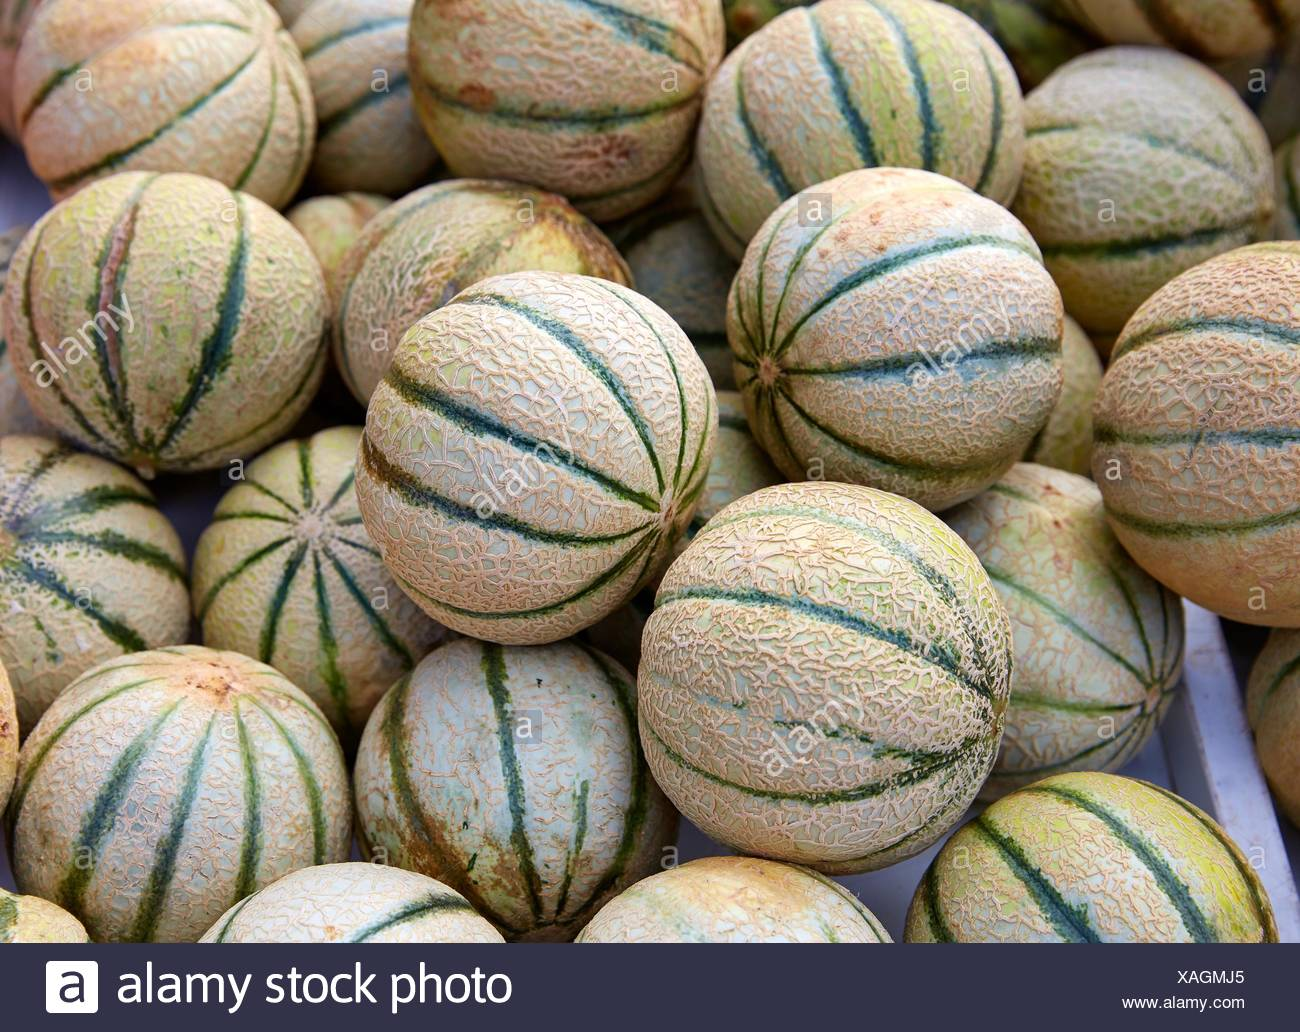 Cantaloupe melons at the marketplace stacked. - Stock Image